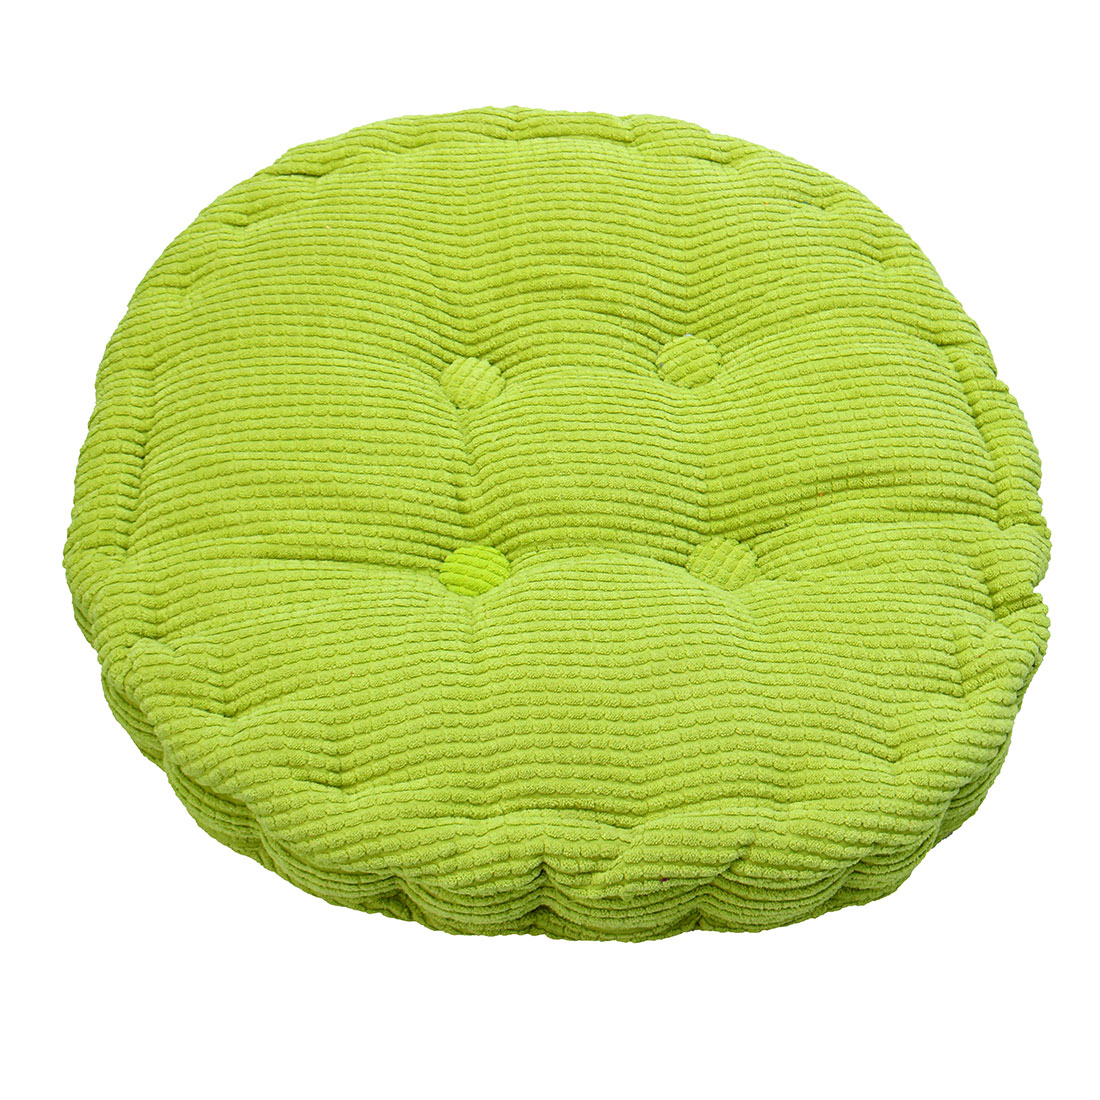 Home Office Corduroy Round Shaped Sofa Floor Chair Seat Cushion Pad Green